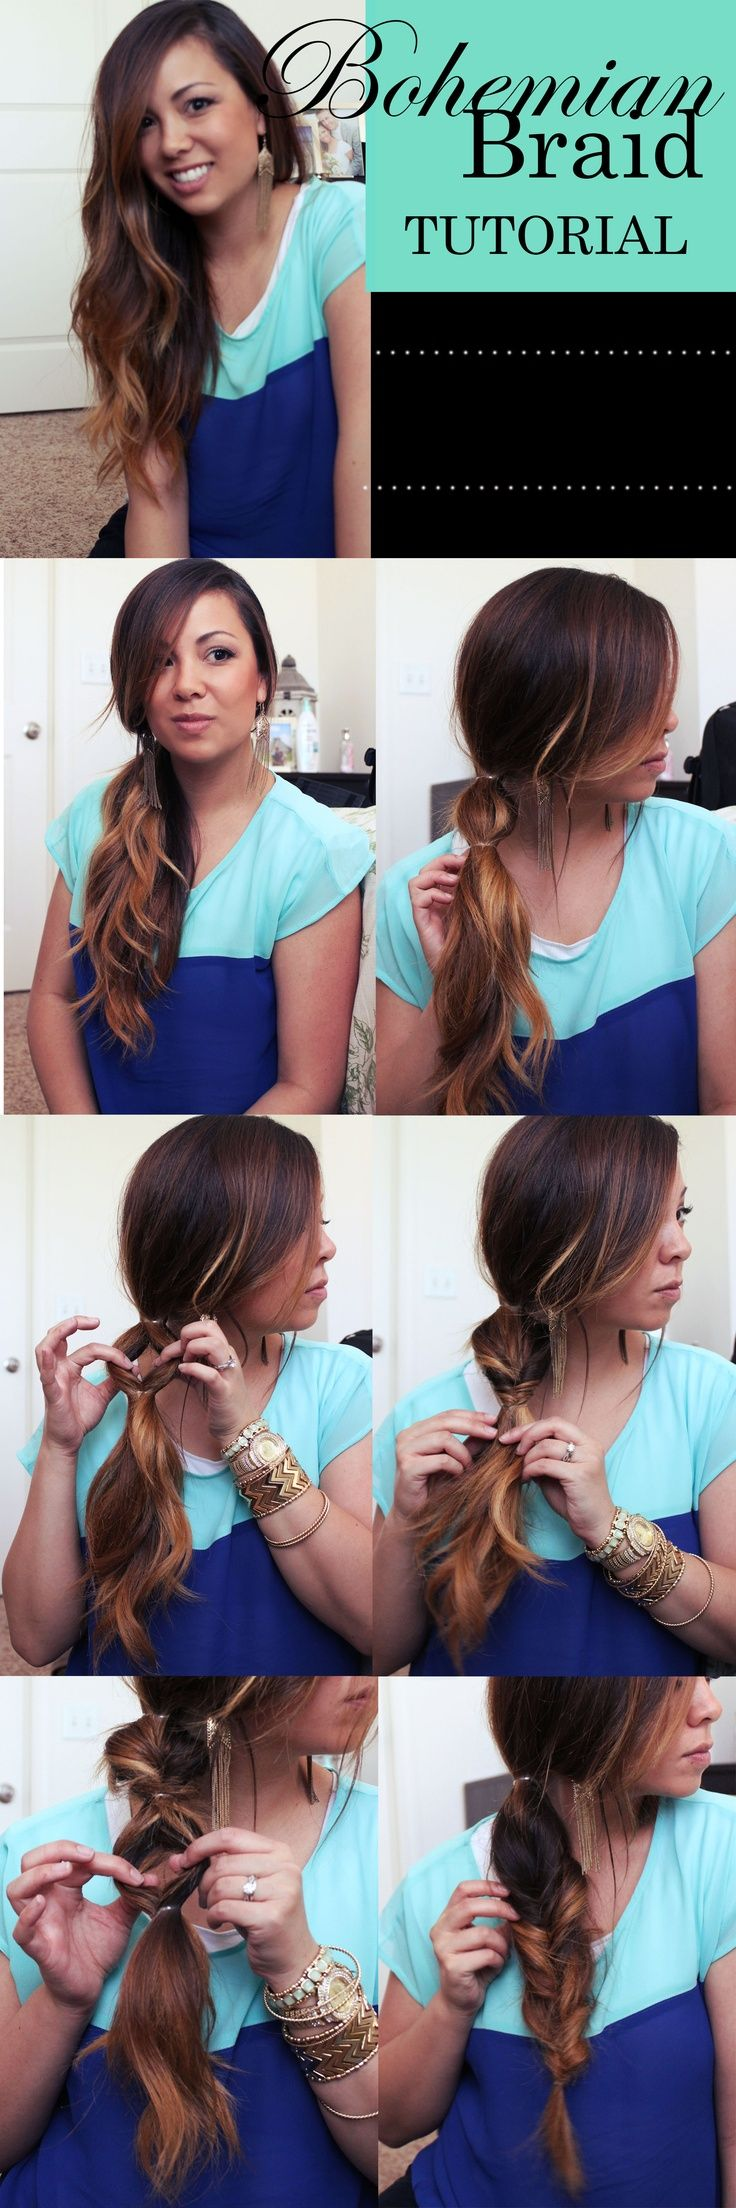 10-boho-hair-tutorial-for-the-season5